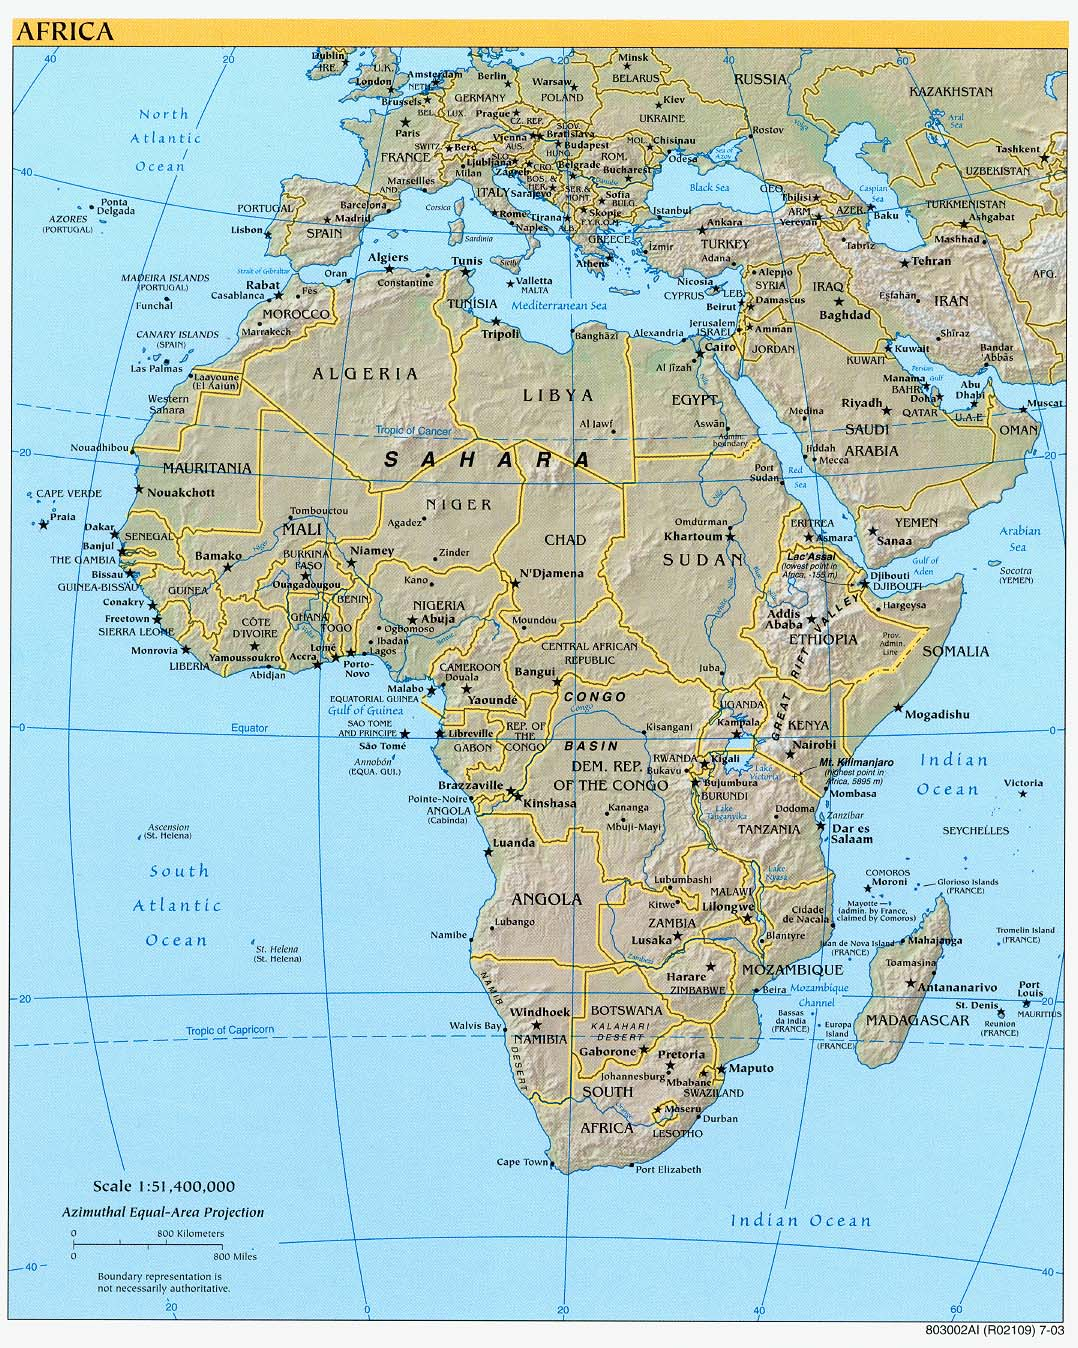 Africa physical map 2003 - Full size